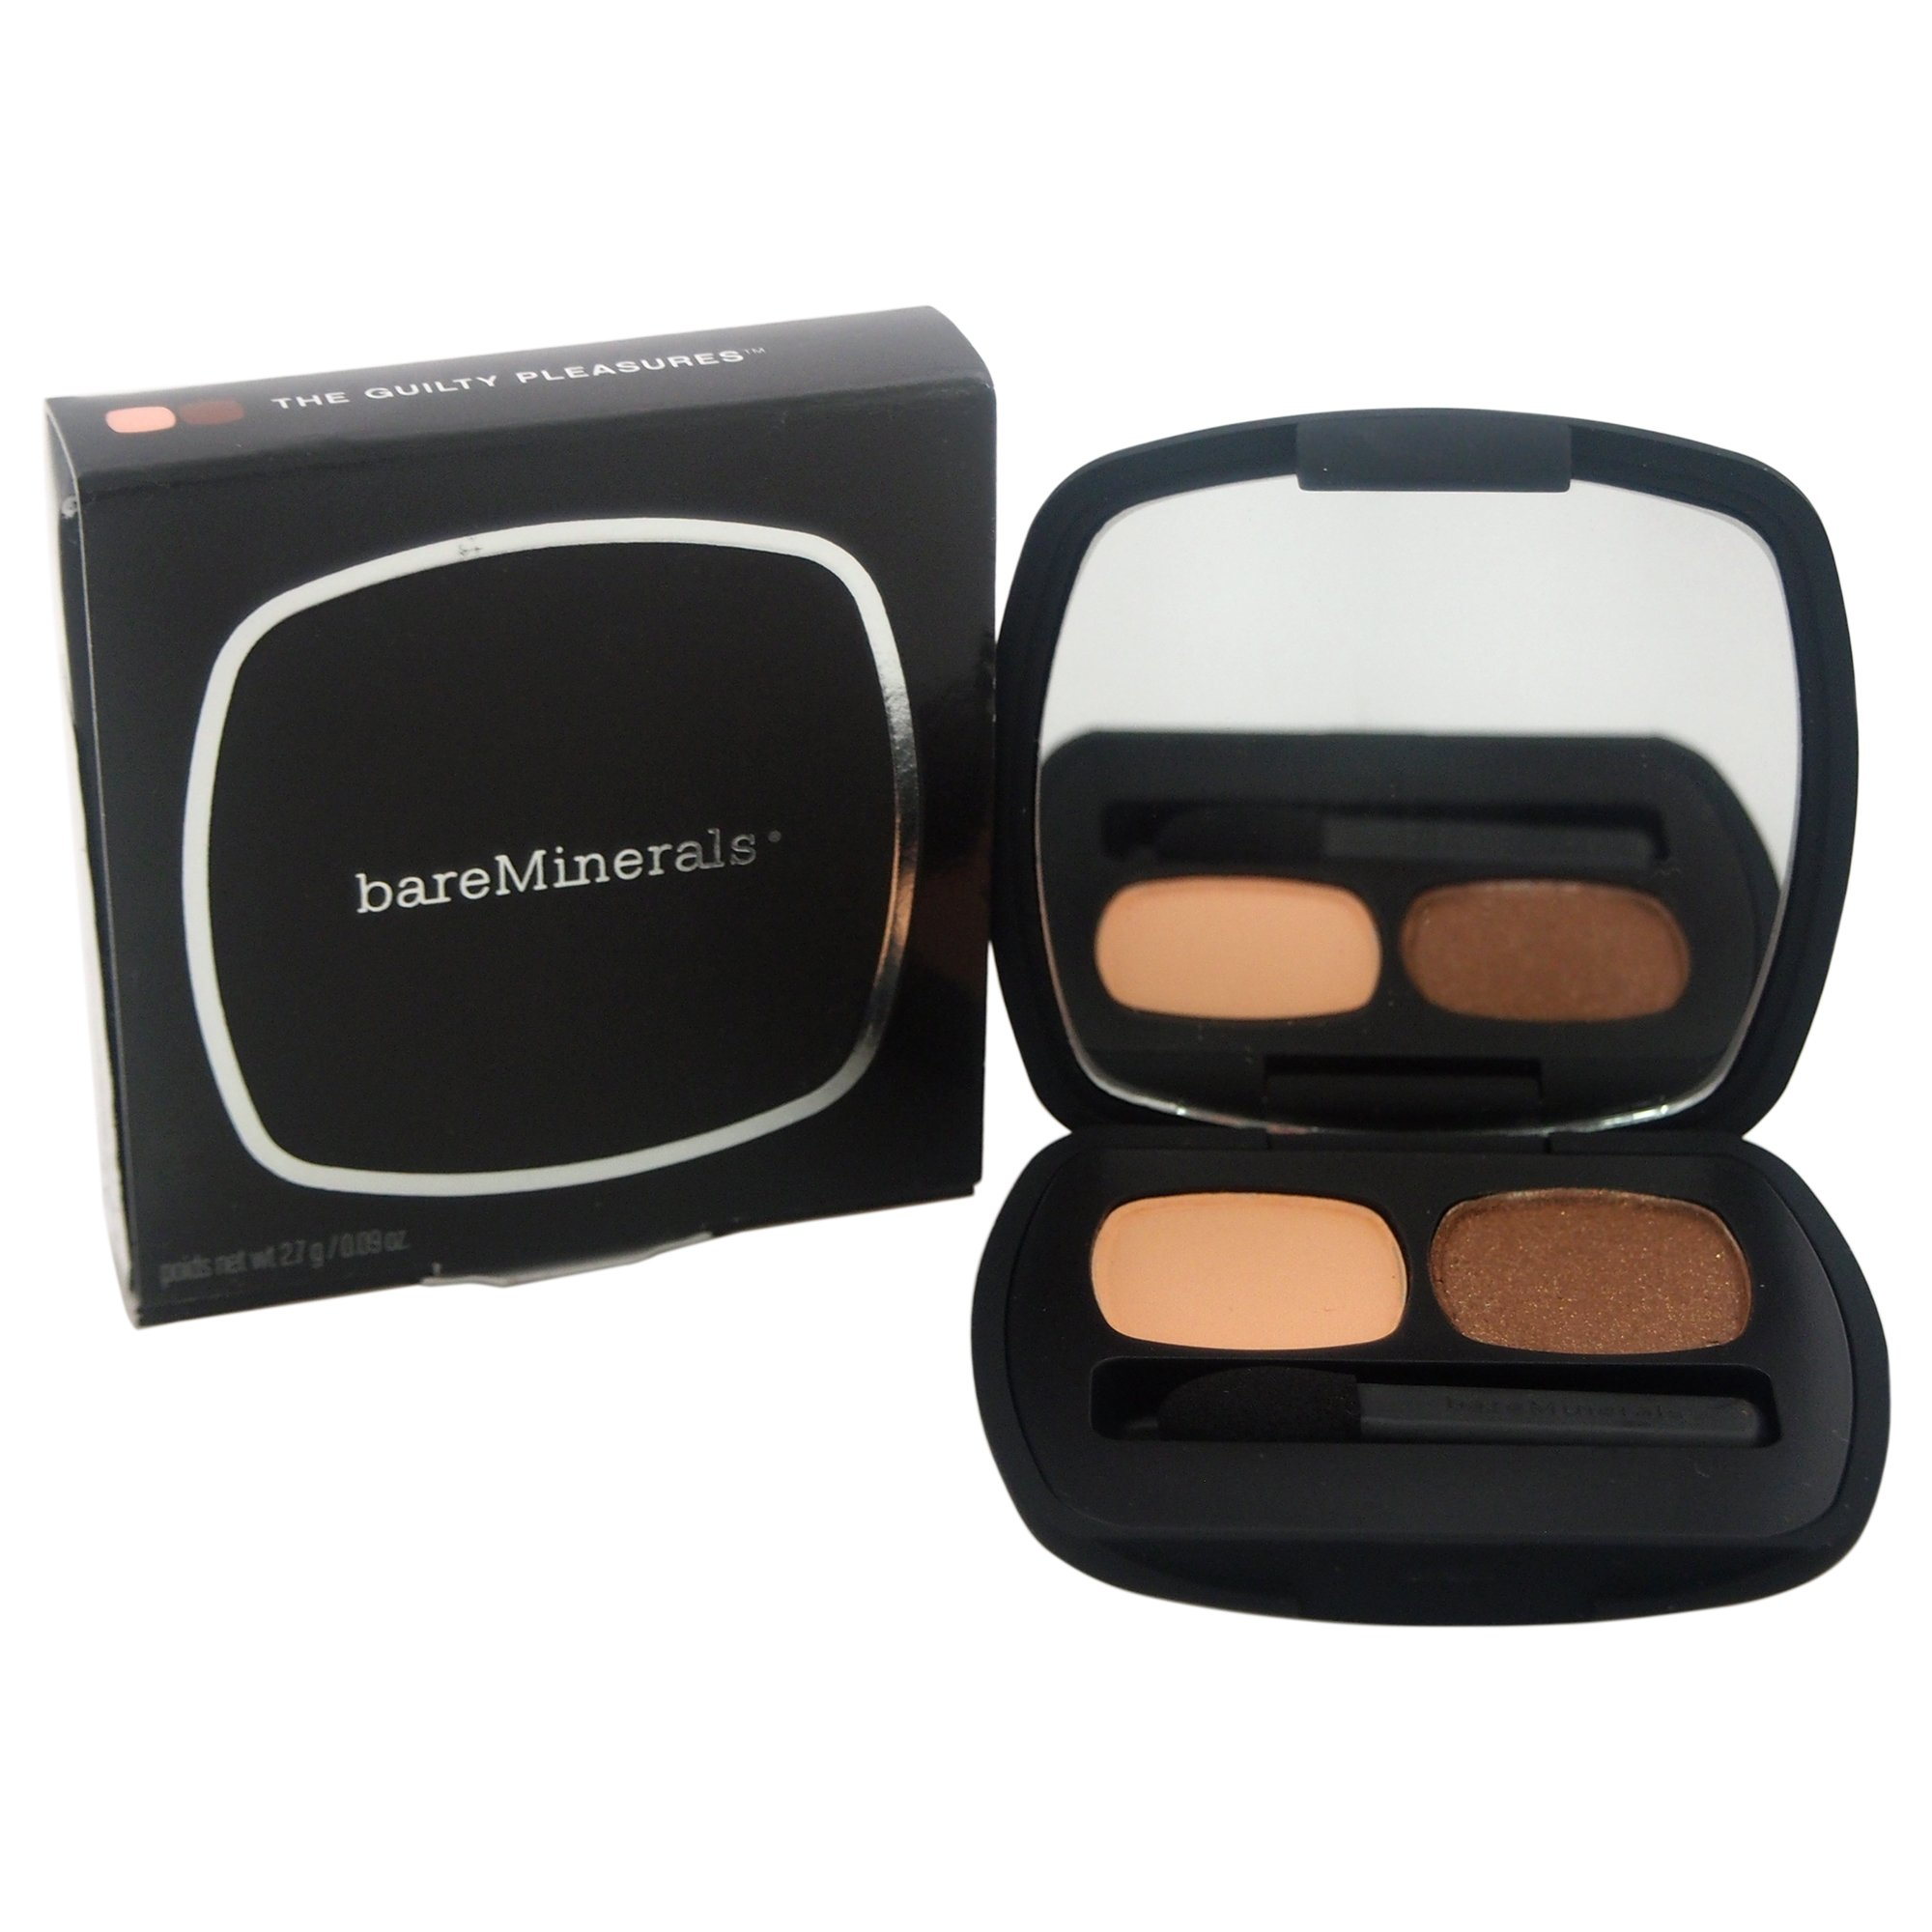 bareMinerals Ready 2.0 Duo The Guilty Pleasures Eyeshadow for Women, 0.09 Ounce